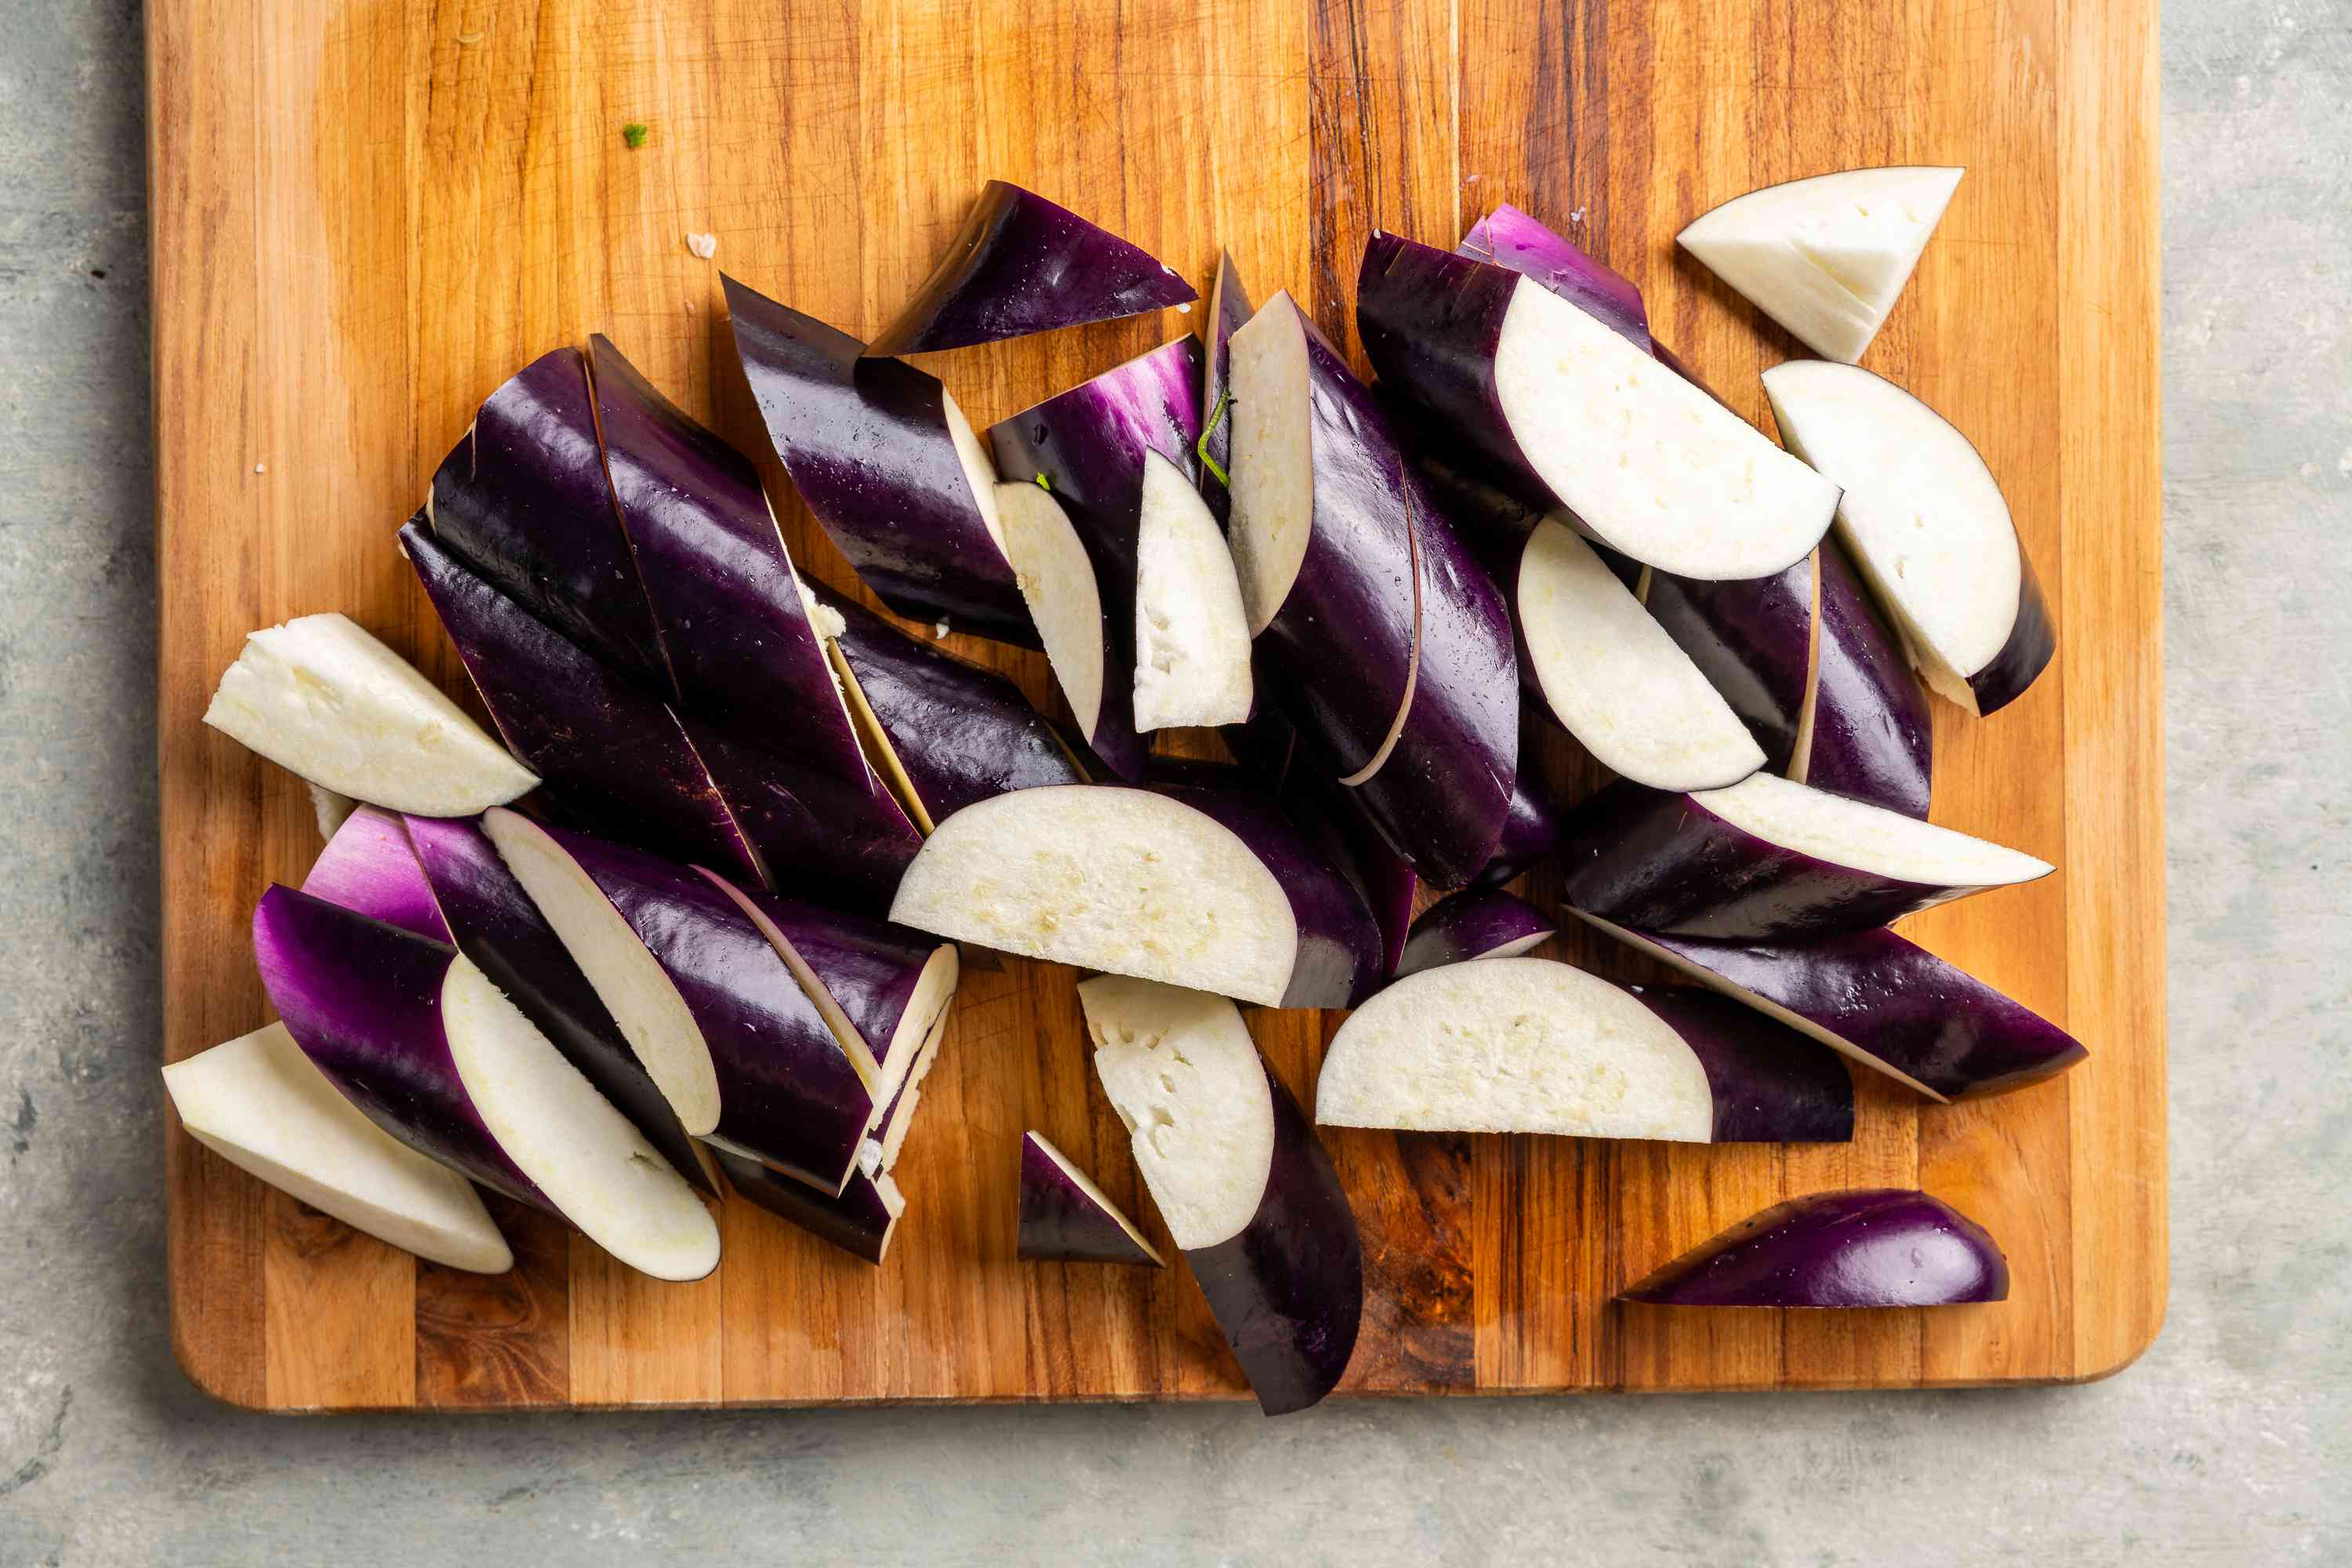 Line up the eggplant slices from left to right and cut diagonally into pieces